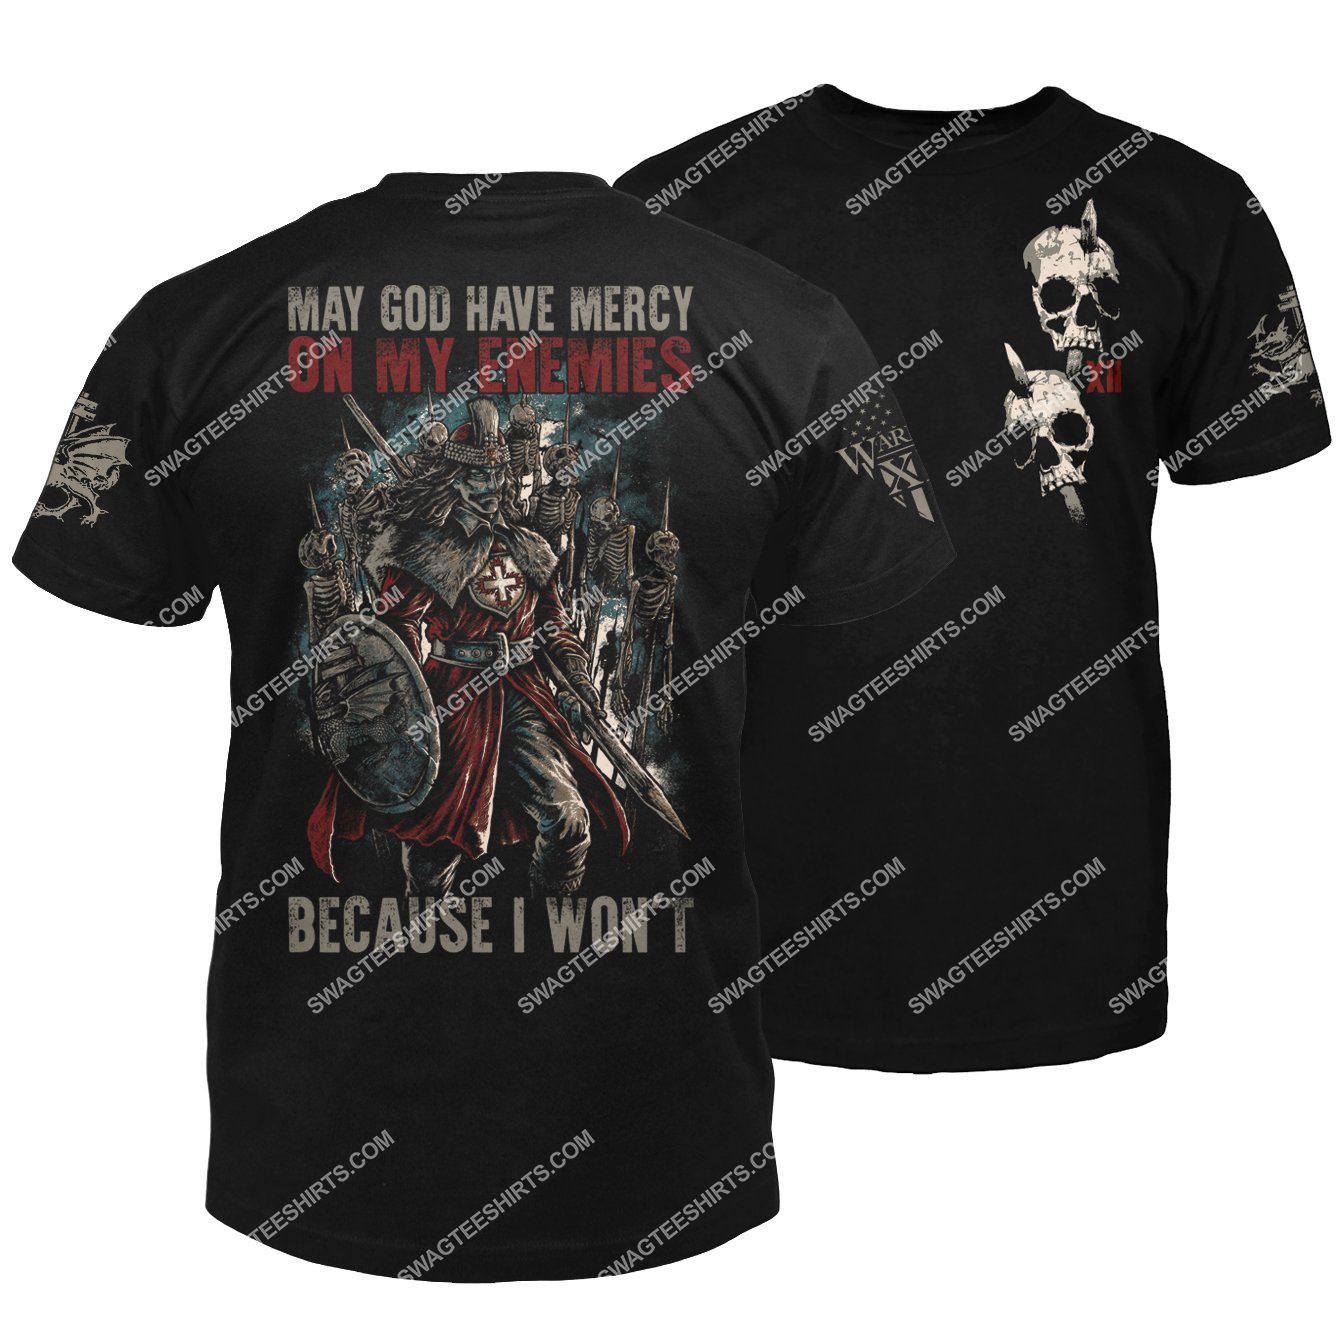 may God have mercy on my enemies because i won't vlad the impaler halloween shirt 1 - Copy (2)